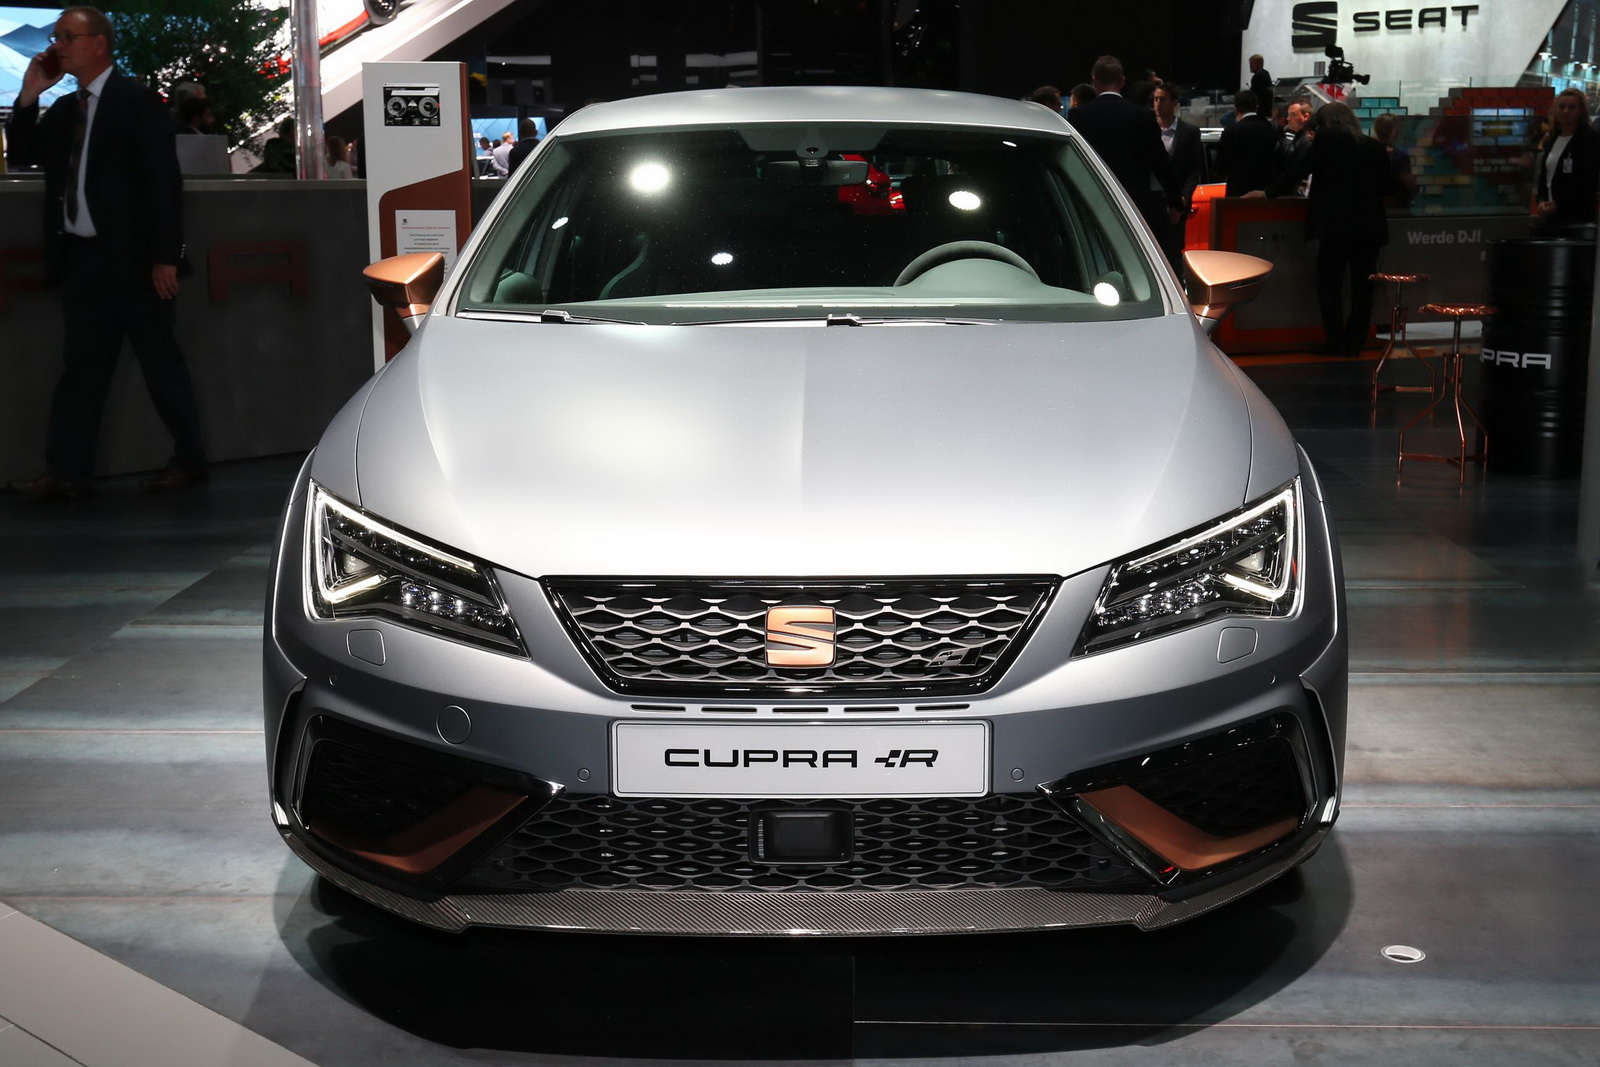 seat s most powerful leon cupra r limited to just 24 examples in the uk. Black Bedroom Furniture Sets. Home Design Ideas